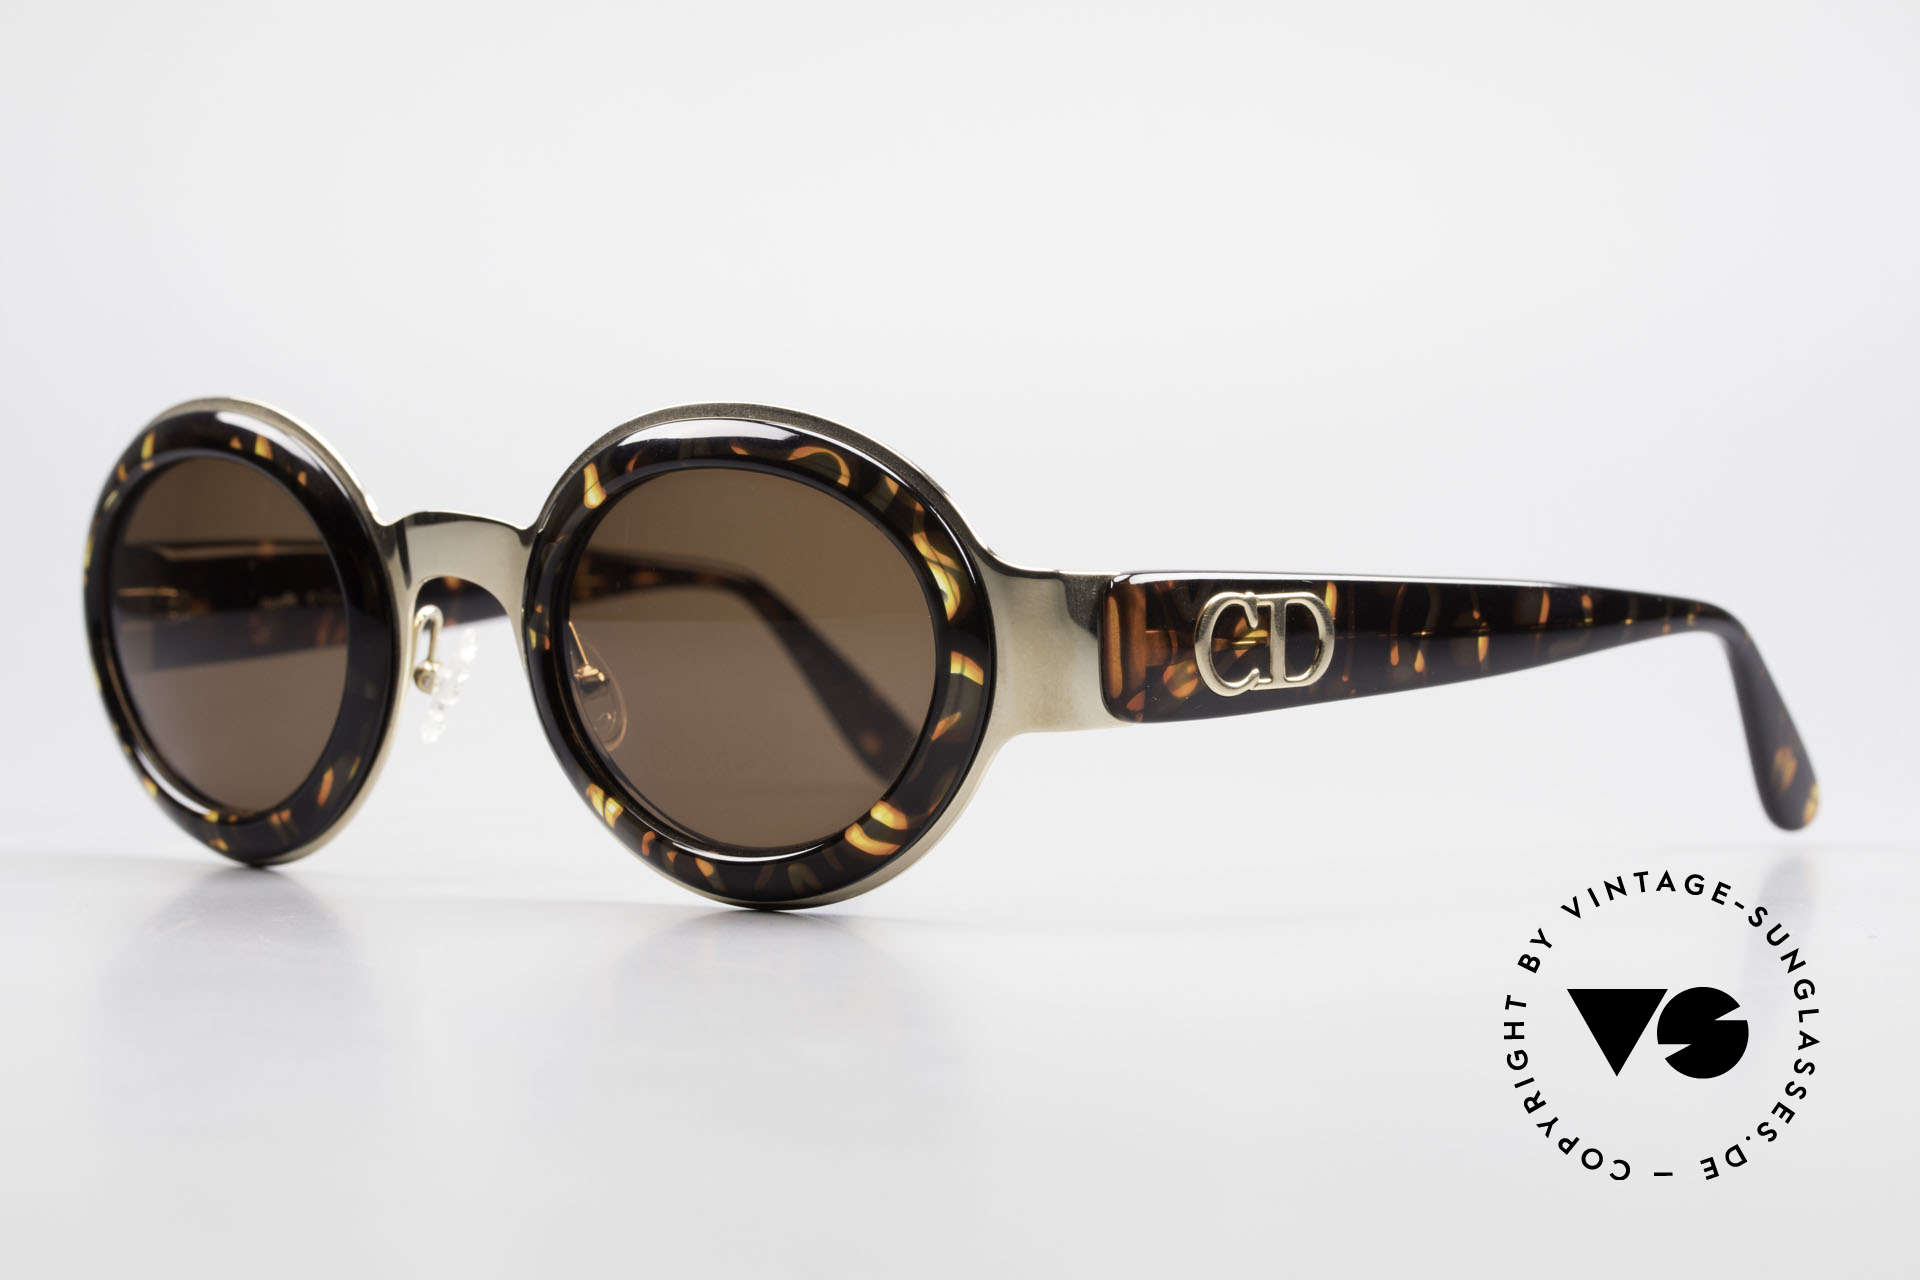 Christian Dior 2037 Round Ladies Sunglasses 90's, great combination of materials, colors and pattern, Made for Women